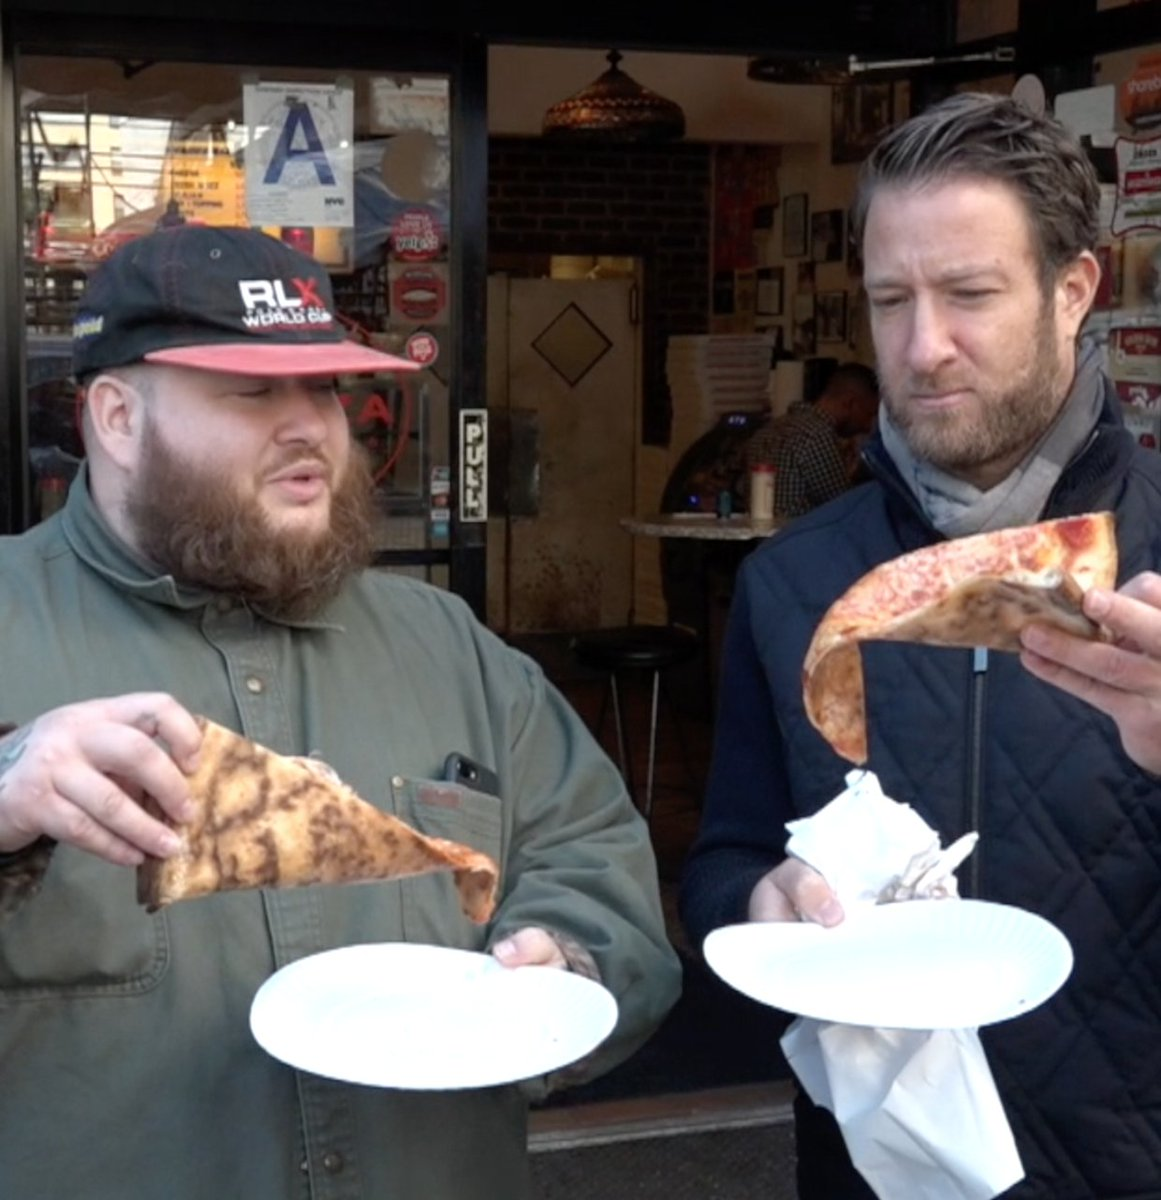 RT @stoolpresidente: Barstool Pizza Review - Joe's Pizza With Special Guest @ActionBronson  https://t.co/Mc7kVhQzvB https://t.co/0bmQAyHIRv